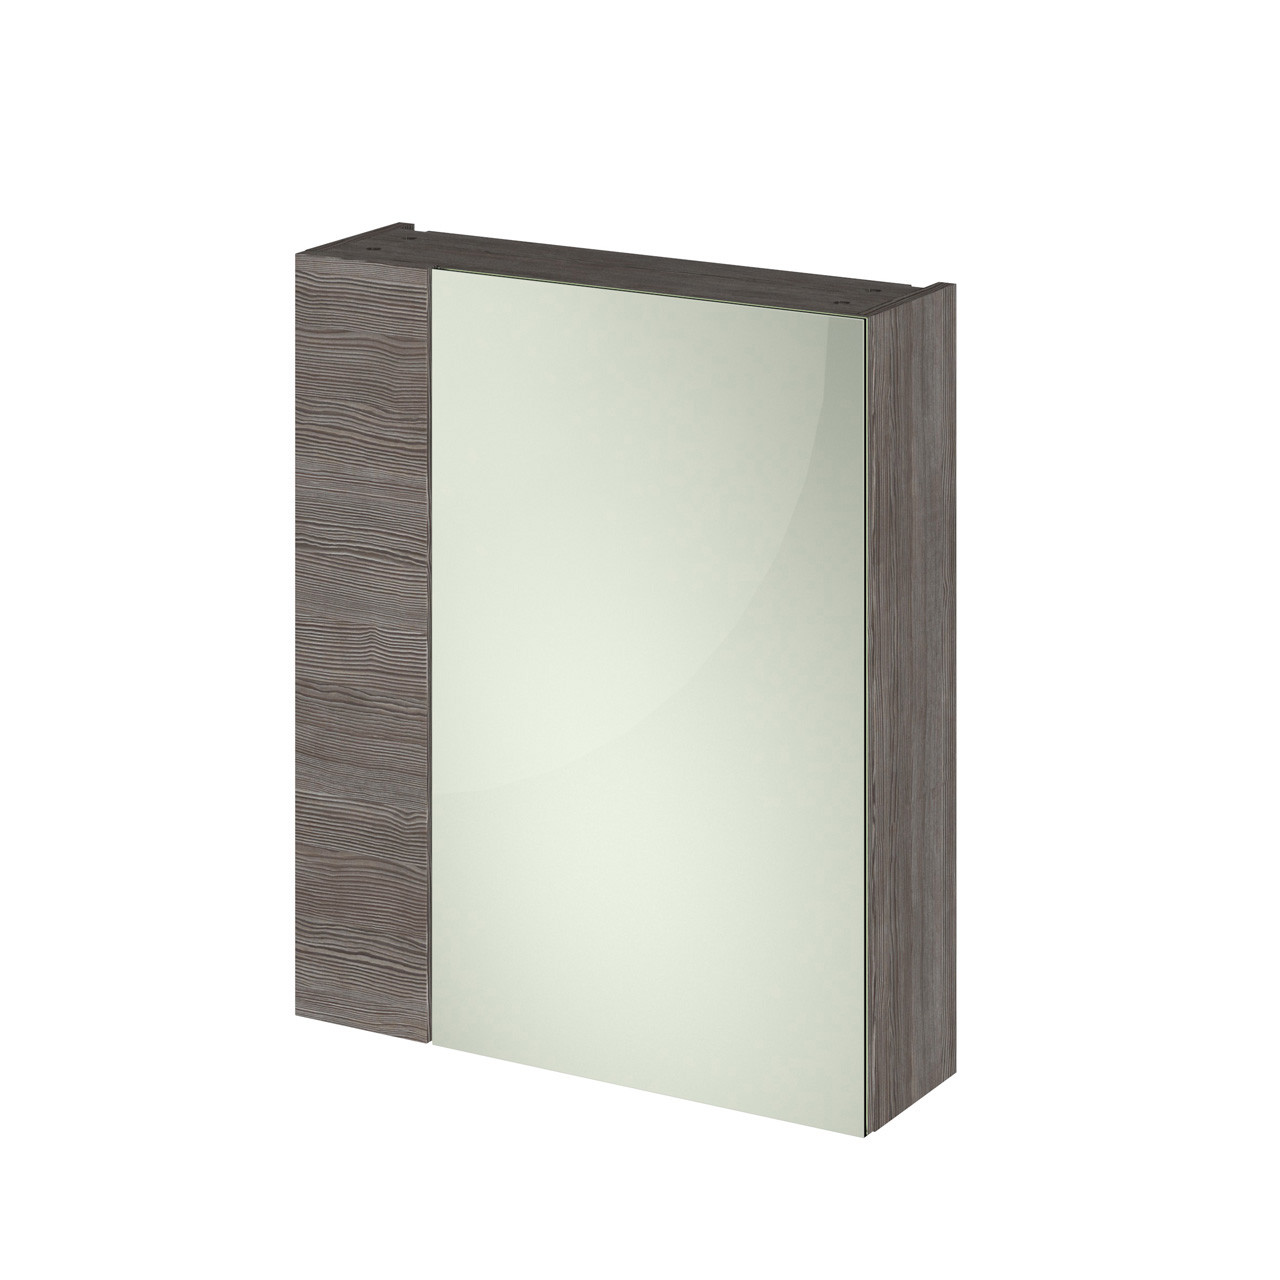 Hudson Reed 600 Fitted Mirror Unit (75/25) 715mm x 600mm x 182mm - OFF518